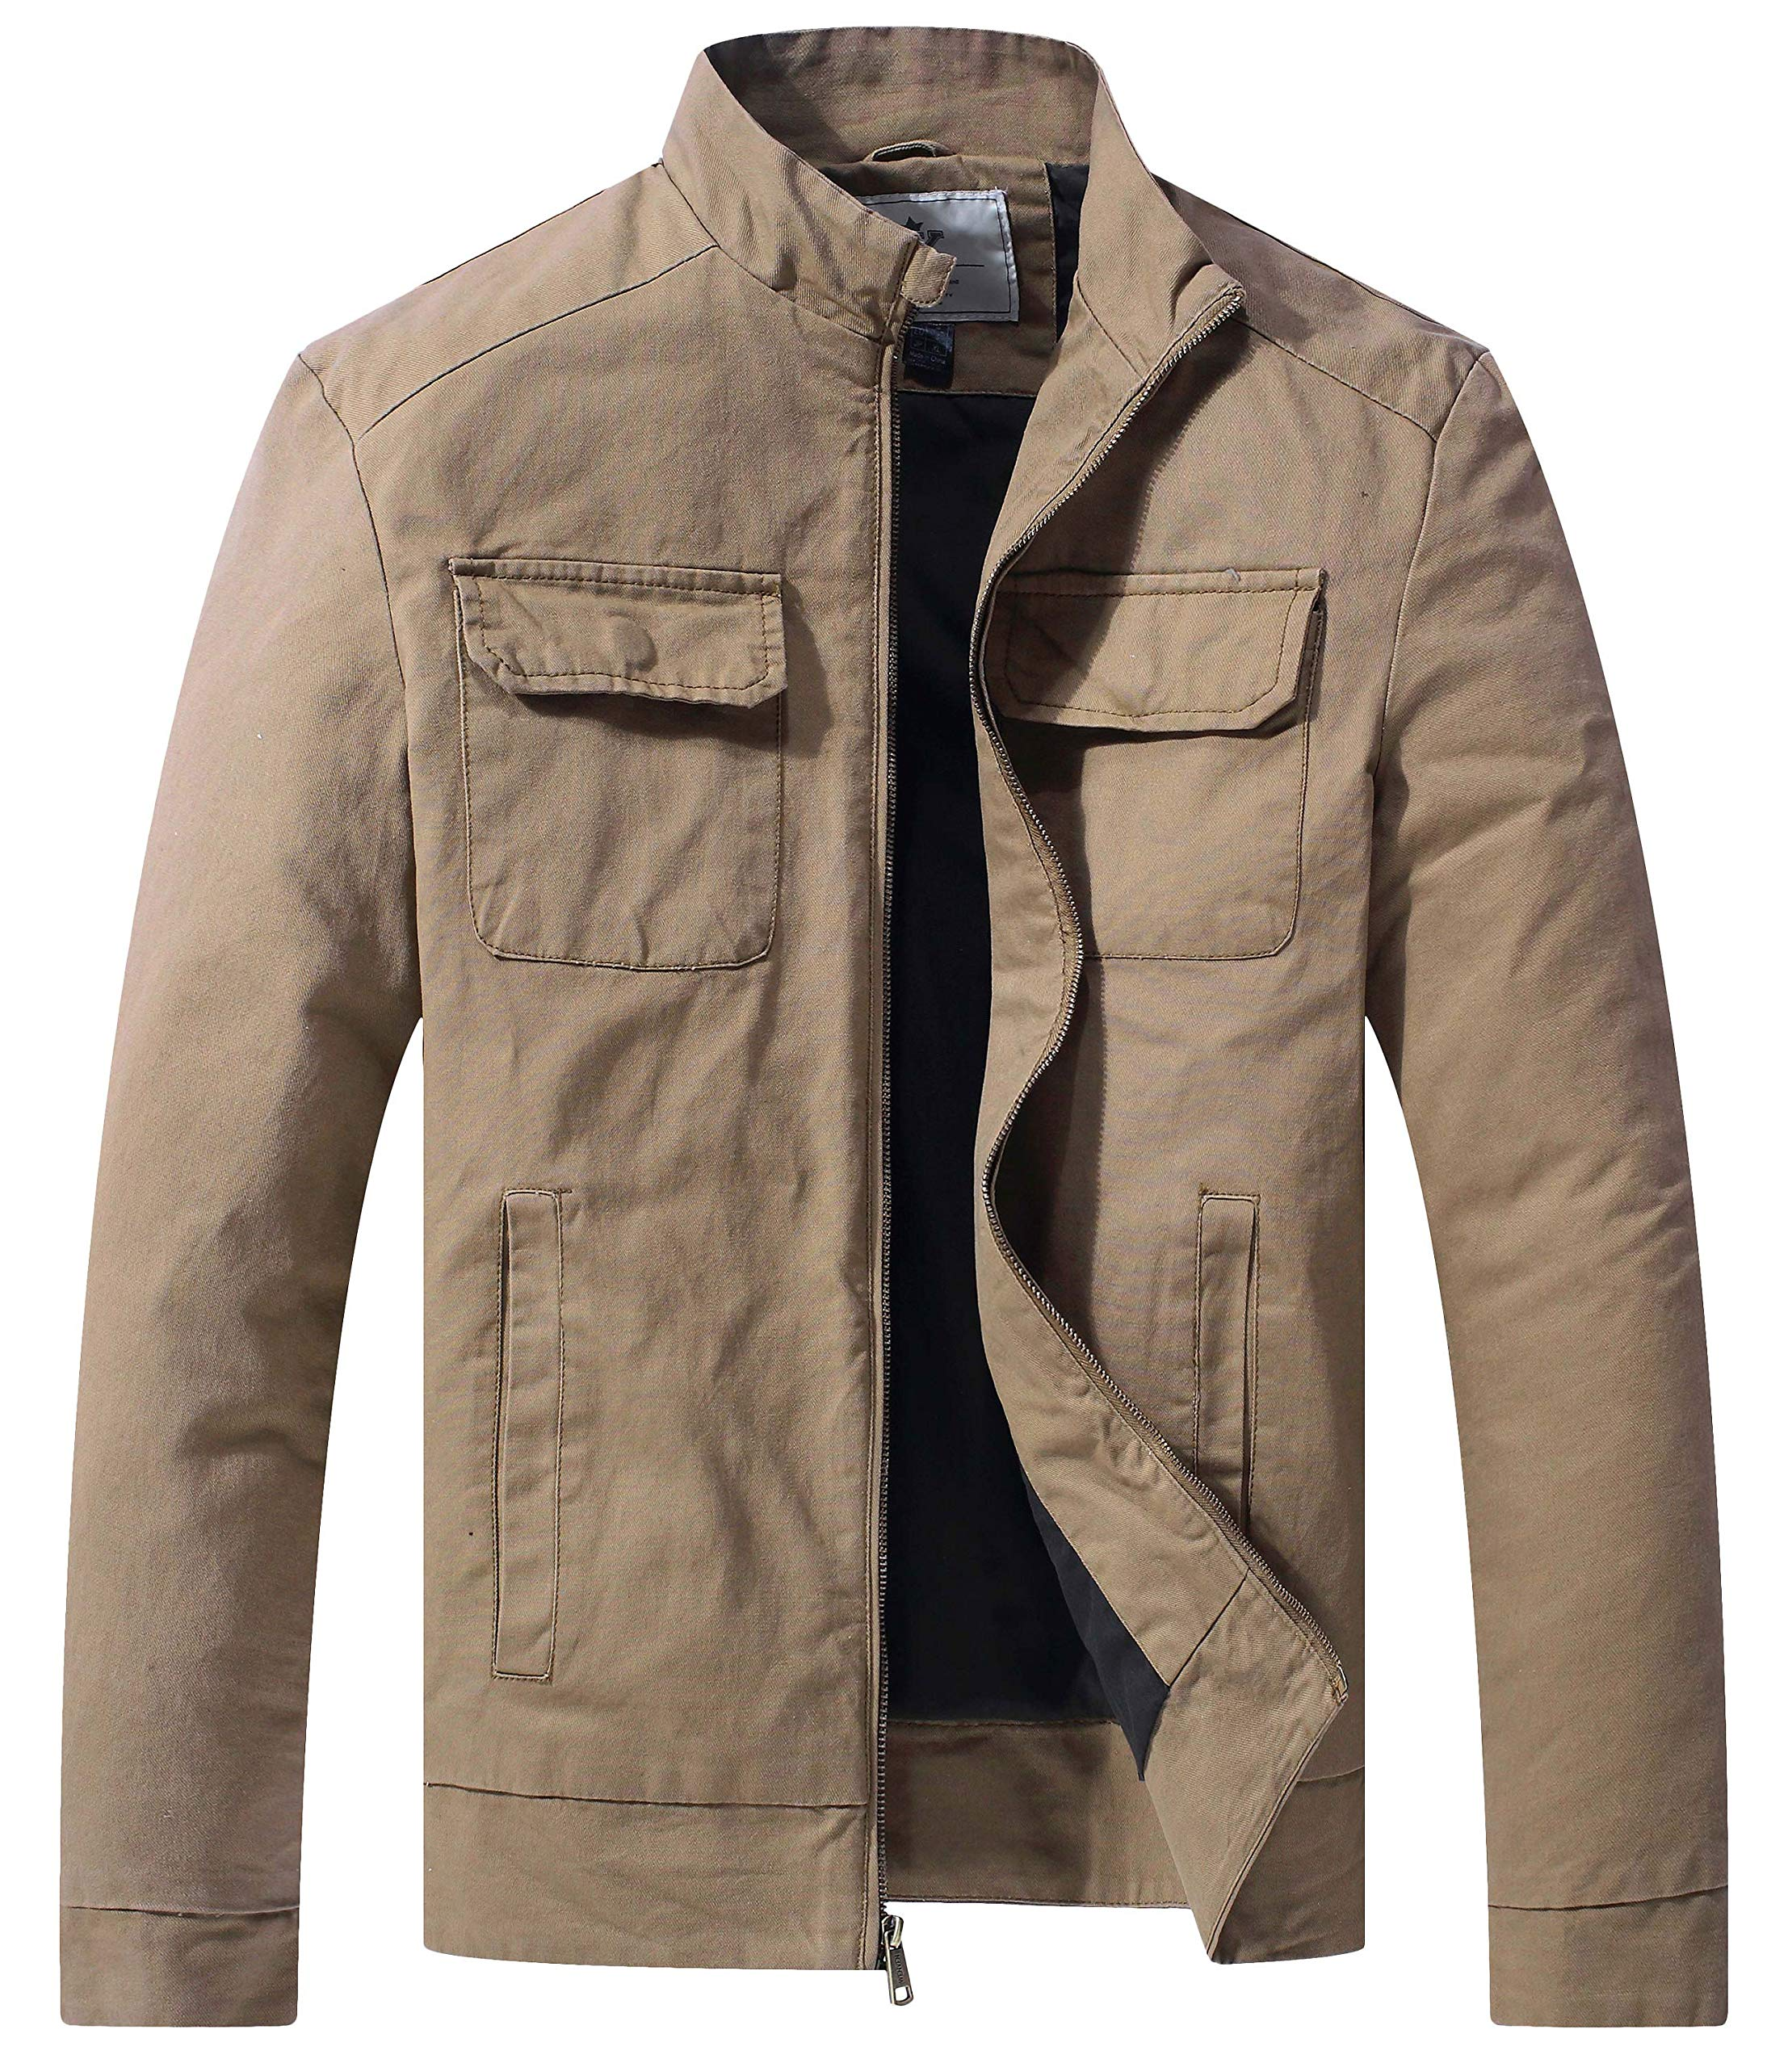 WenVen Men's Cotton Fall Casual Army Lightweight Jacket(Khaki,Medium) by WenVen